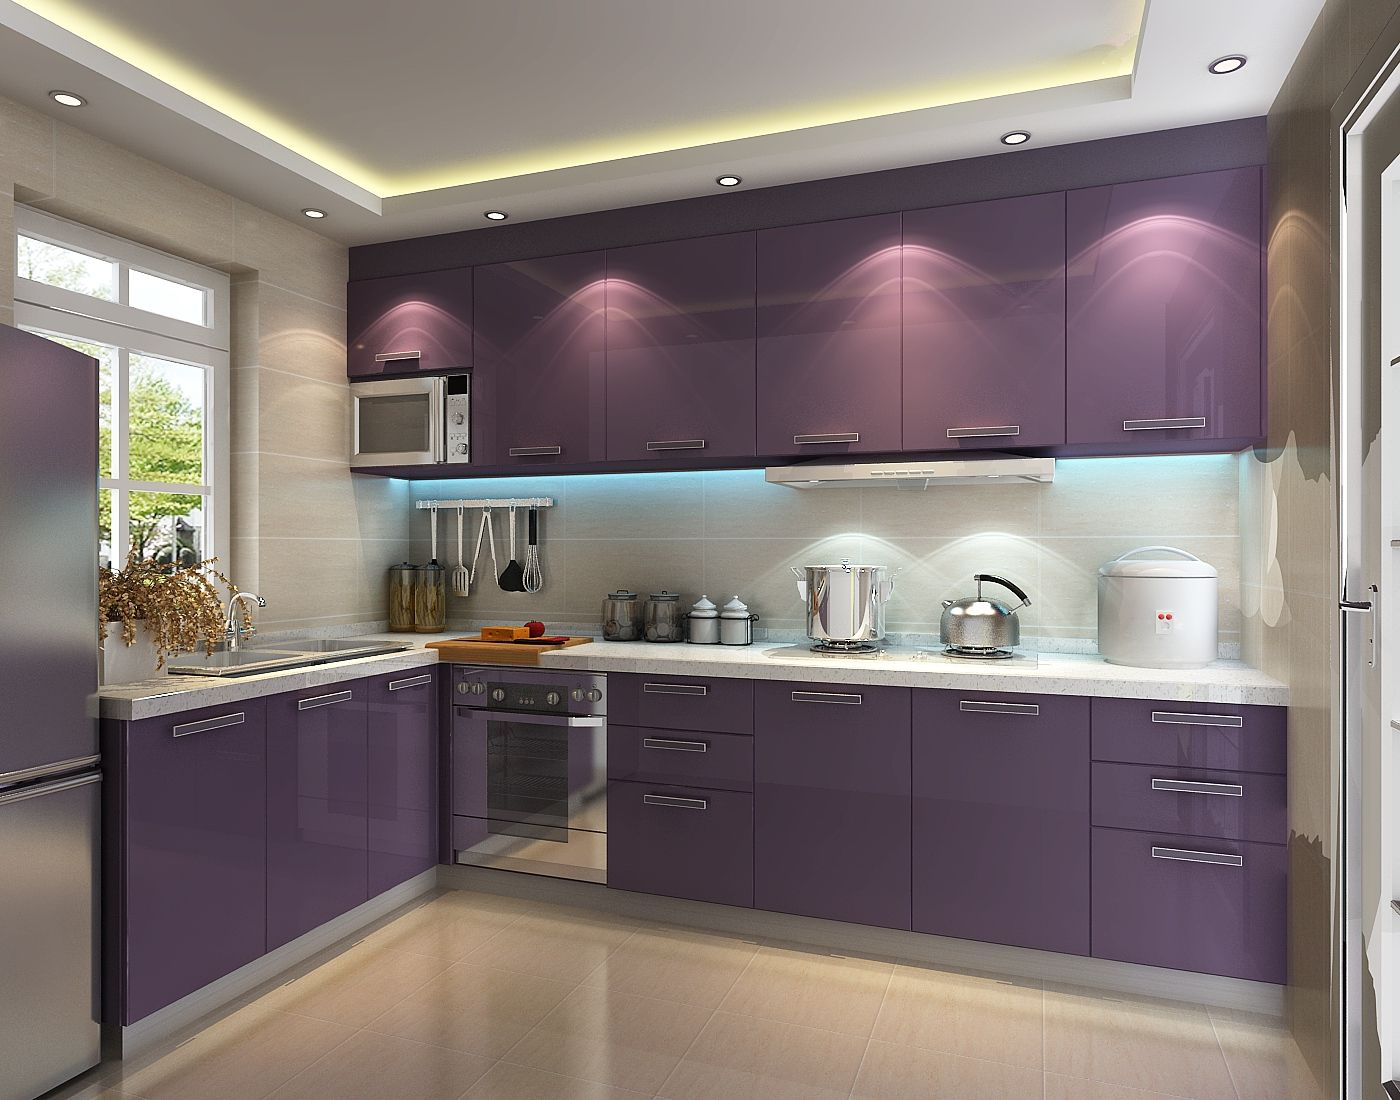 L Shape PVC Purple Cabinet For Small Kitchen   Modern   Kitchen Cabinets    Other Metro   Foshan Yajiasi VC Cucine Kitchen Cabinet Co.